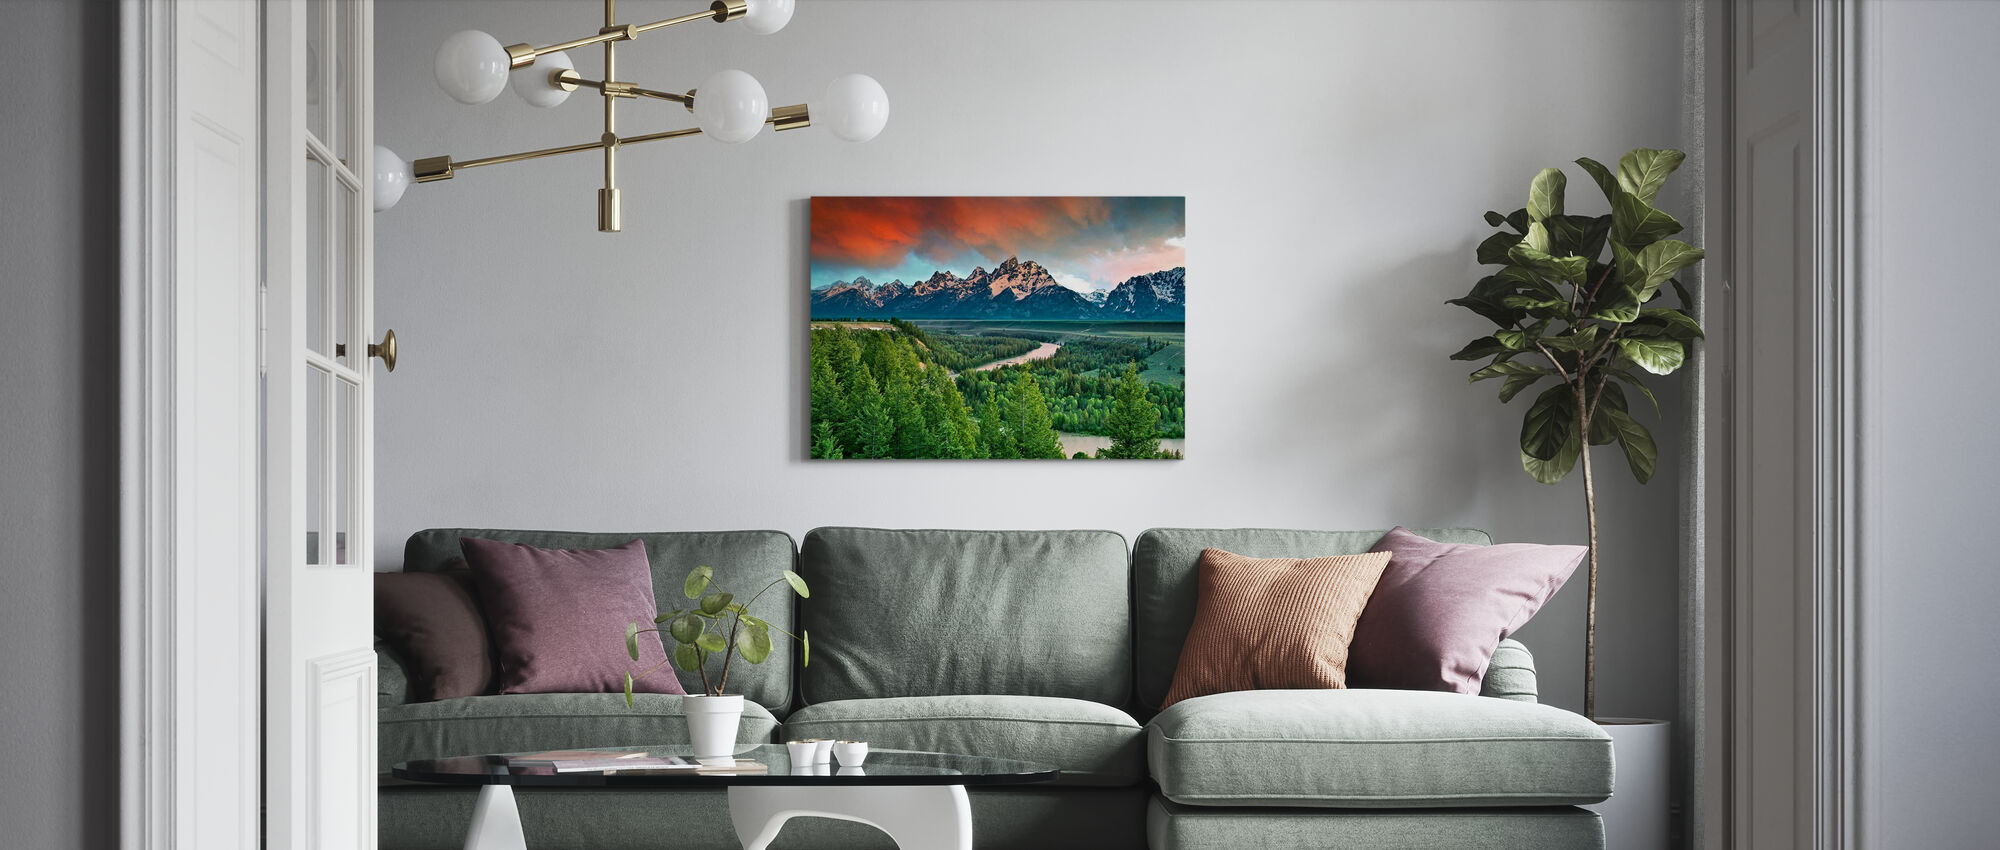 Snake rivier - Canvas print - Woonkamer